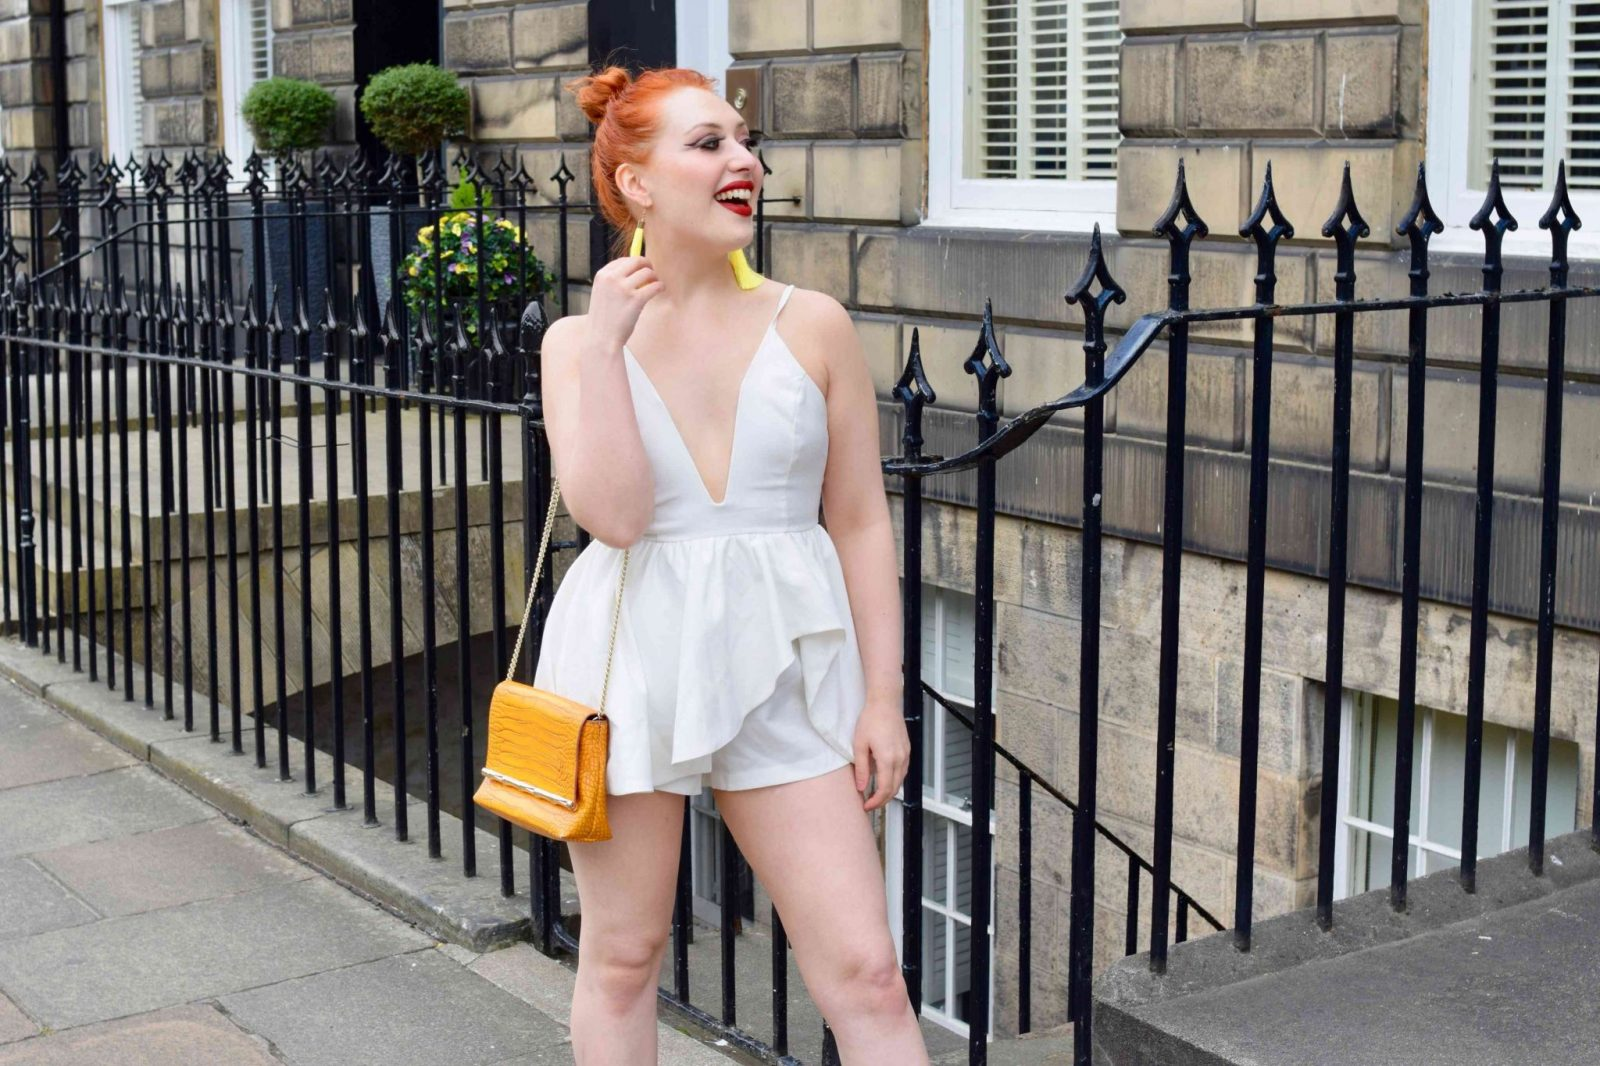 Blogger Twenty-Something City wears summery white playsuit with yellow accessories